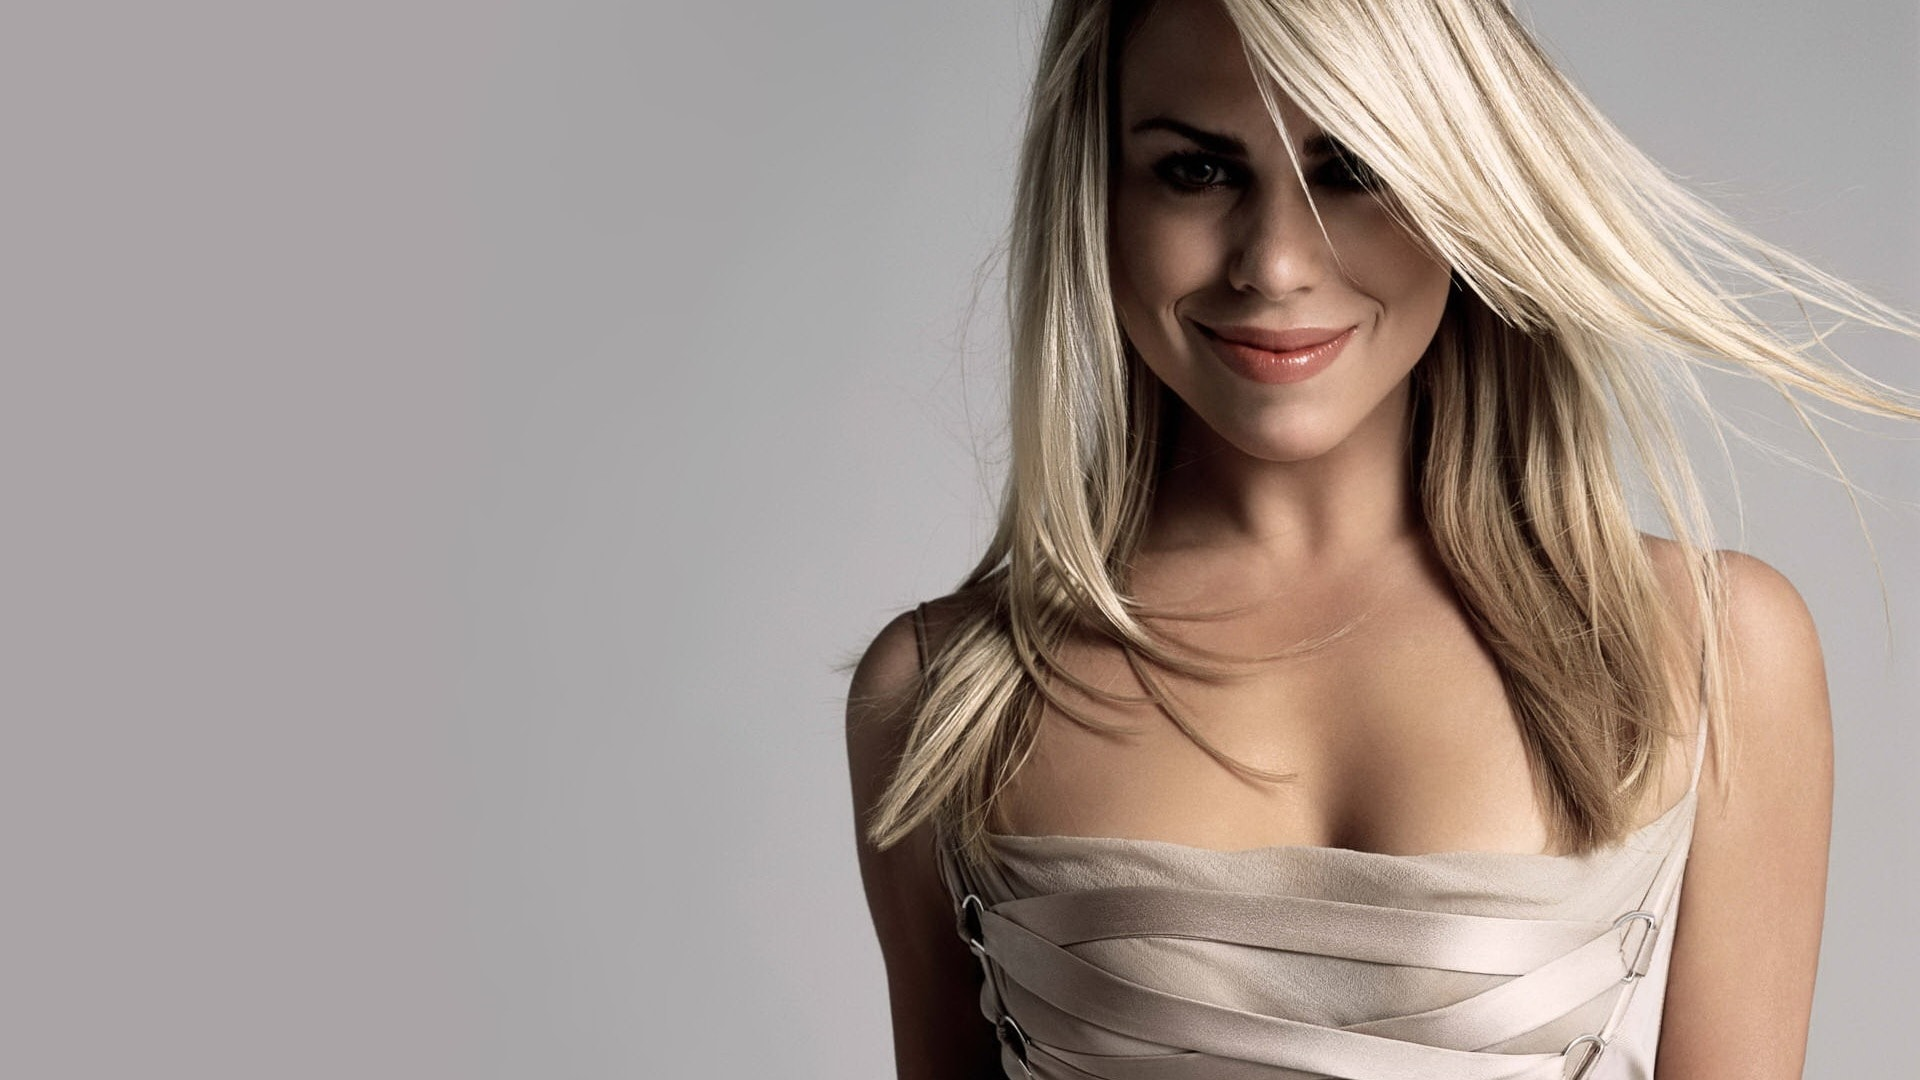 Billie Piper (born 1982)